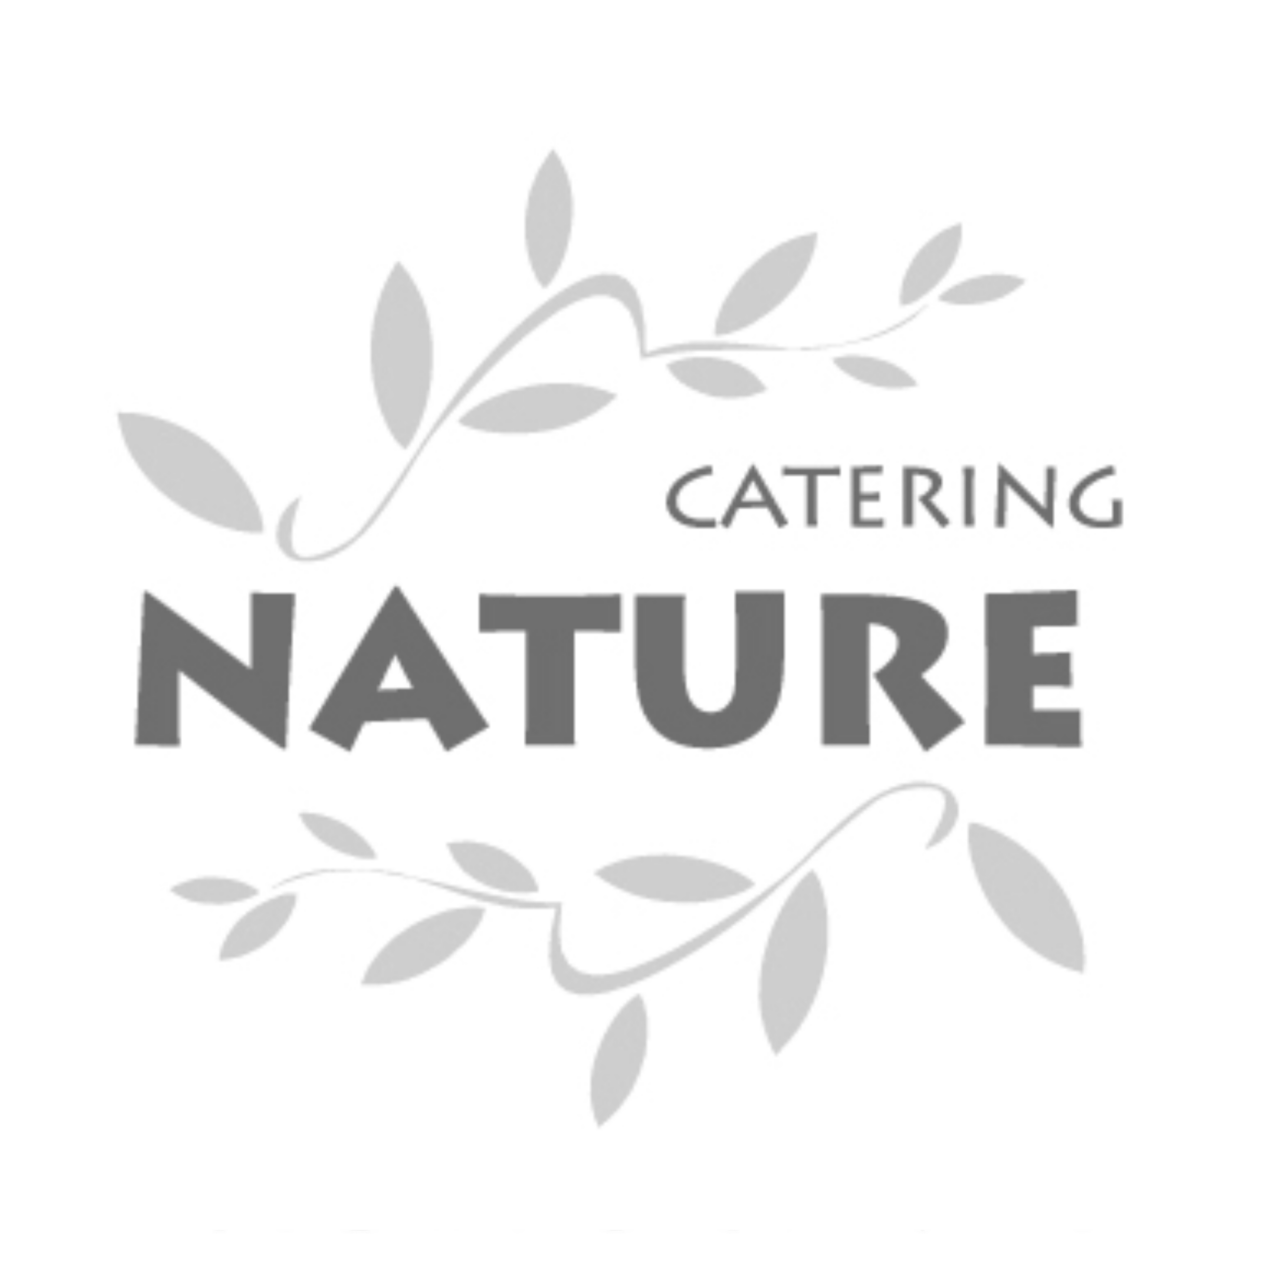 Nature Catering